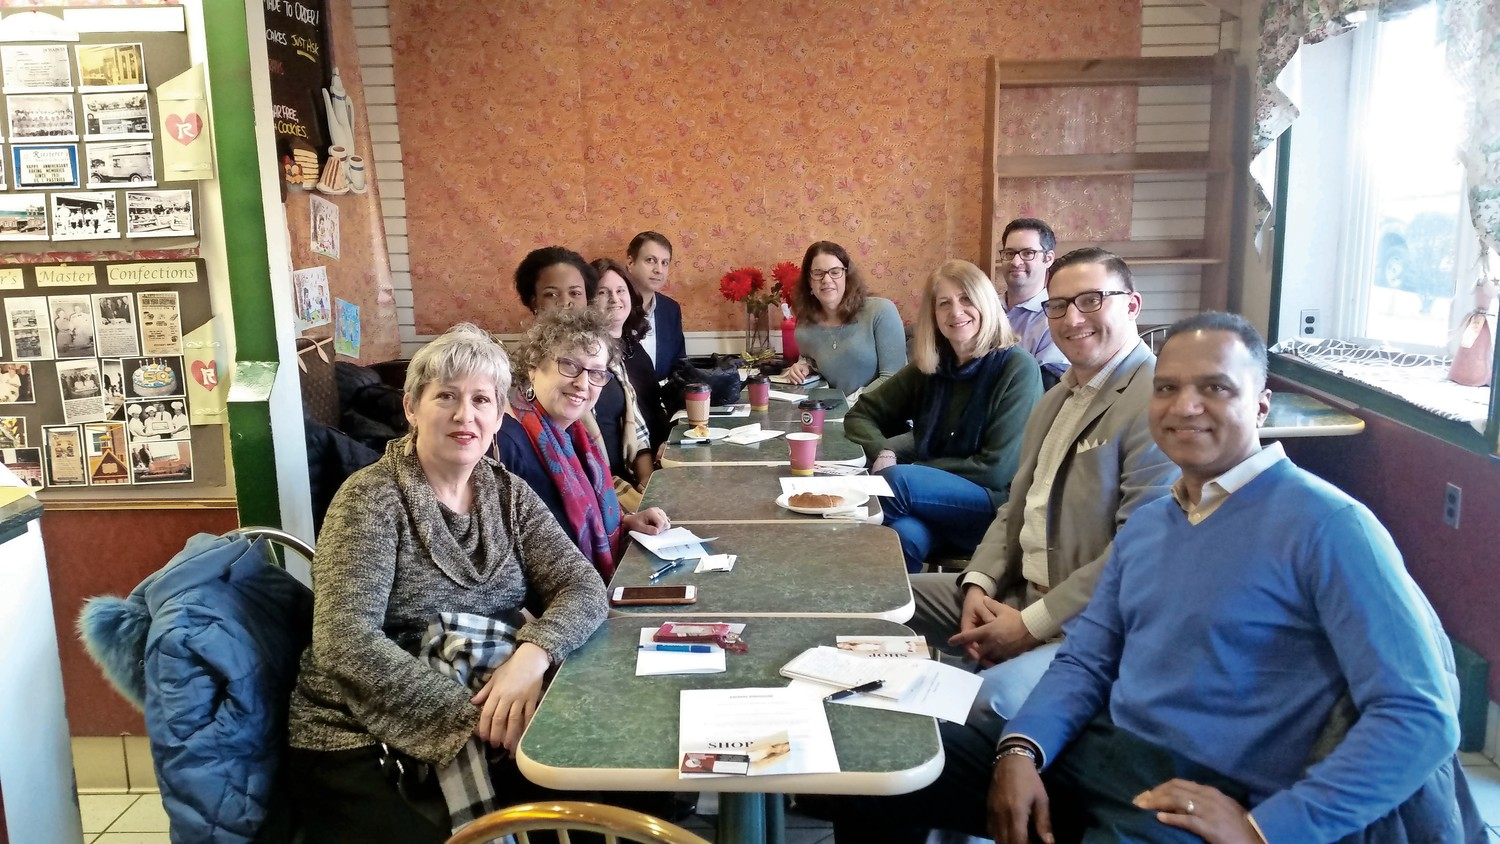 Breakfast Connect meets every Tuesday morning from 7:30 to 8:30 a.m. at Riesterer's Bakery in West Hempstead.